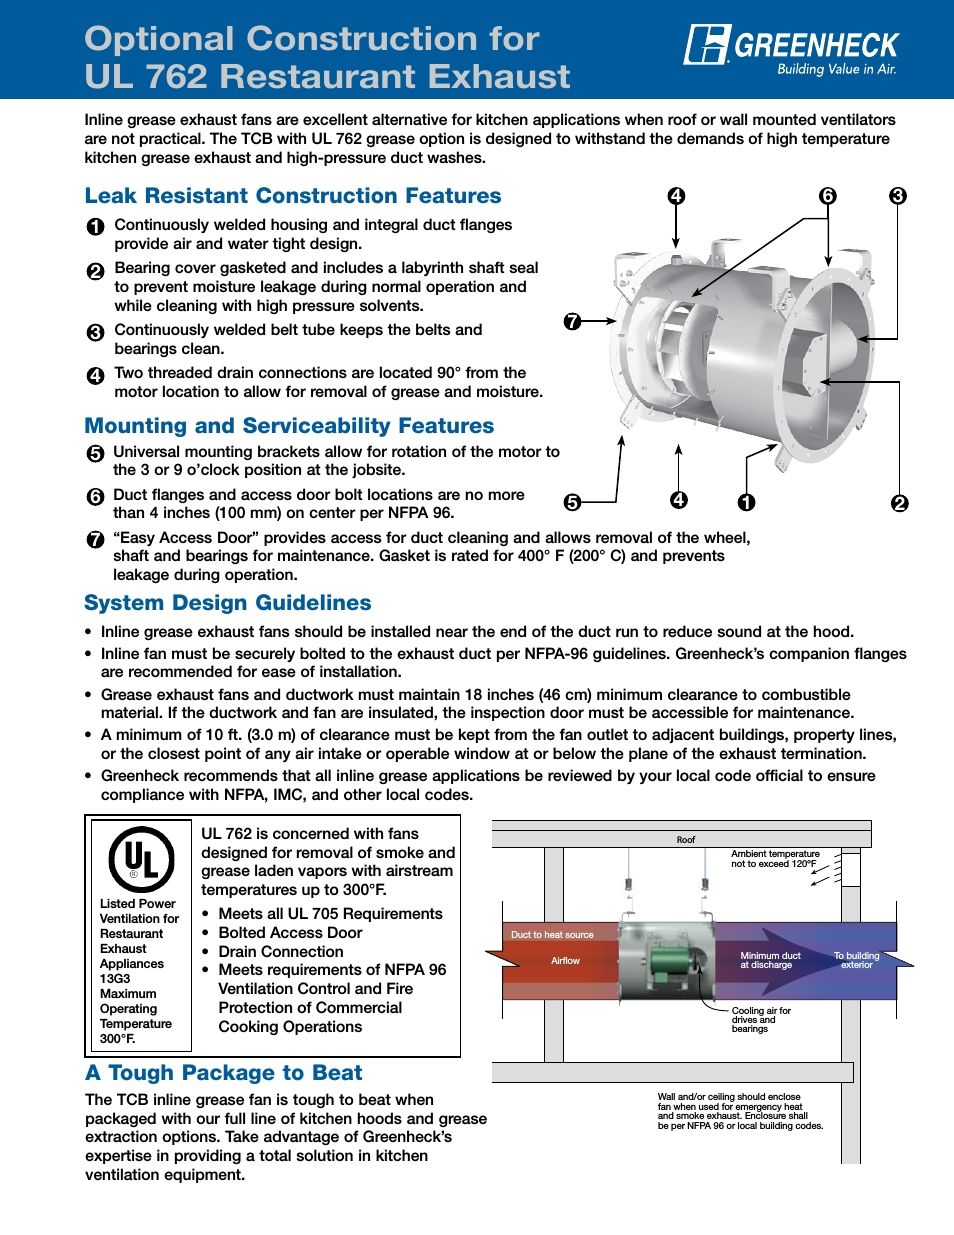 Greenheck Inline Kitchen Exhaust Fan httpurresultsus